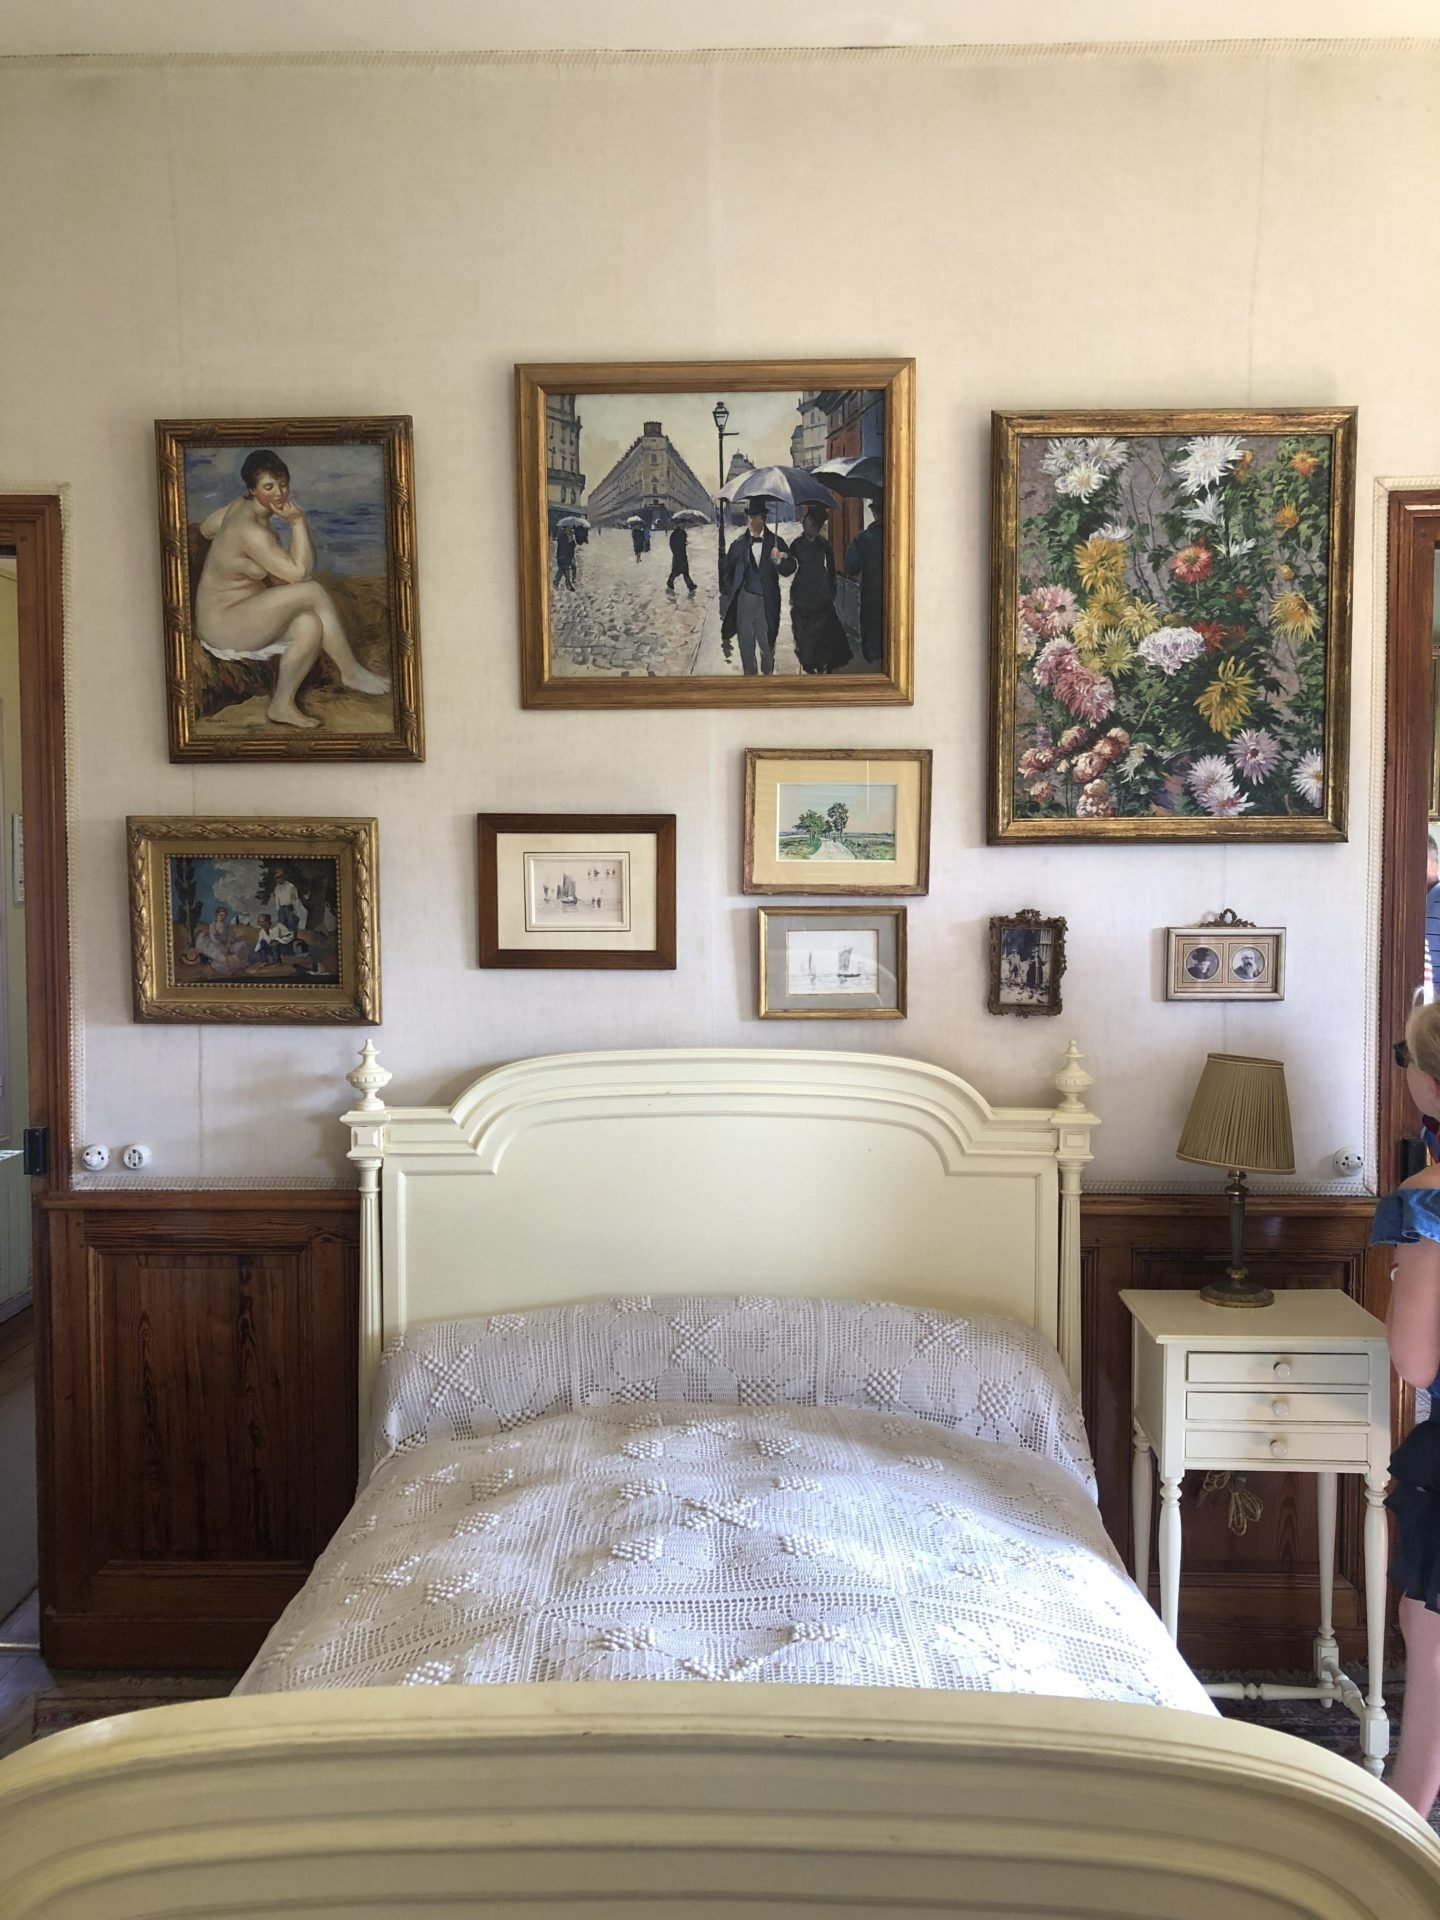 On the first floor above the studio we find the private apartments and Monets bedroom. This room has been reconstructed from original photos and looks pretty much as it did when claude was alive.